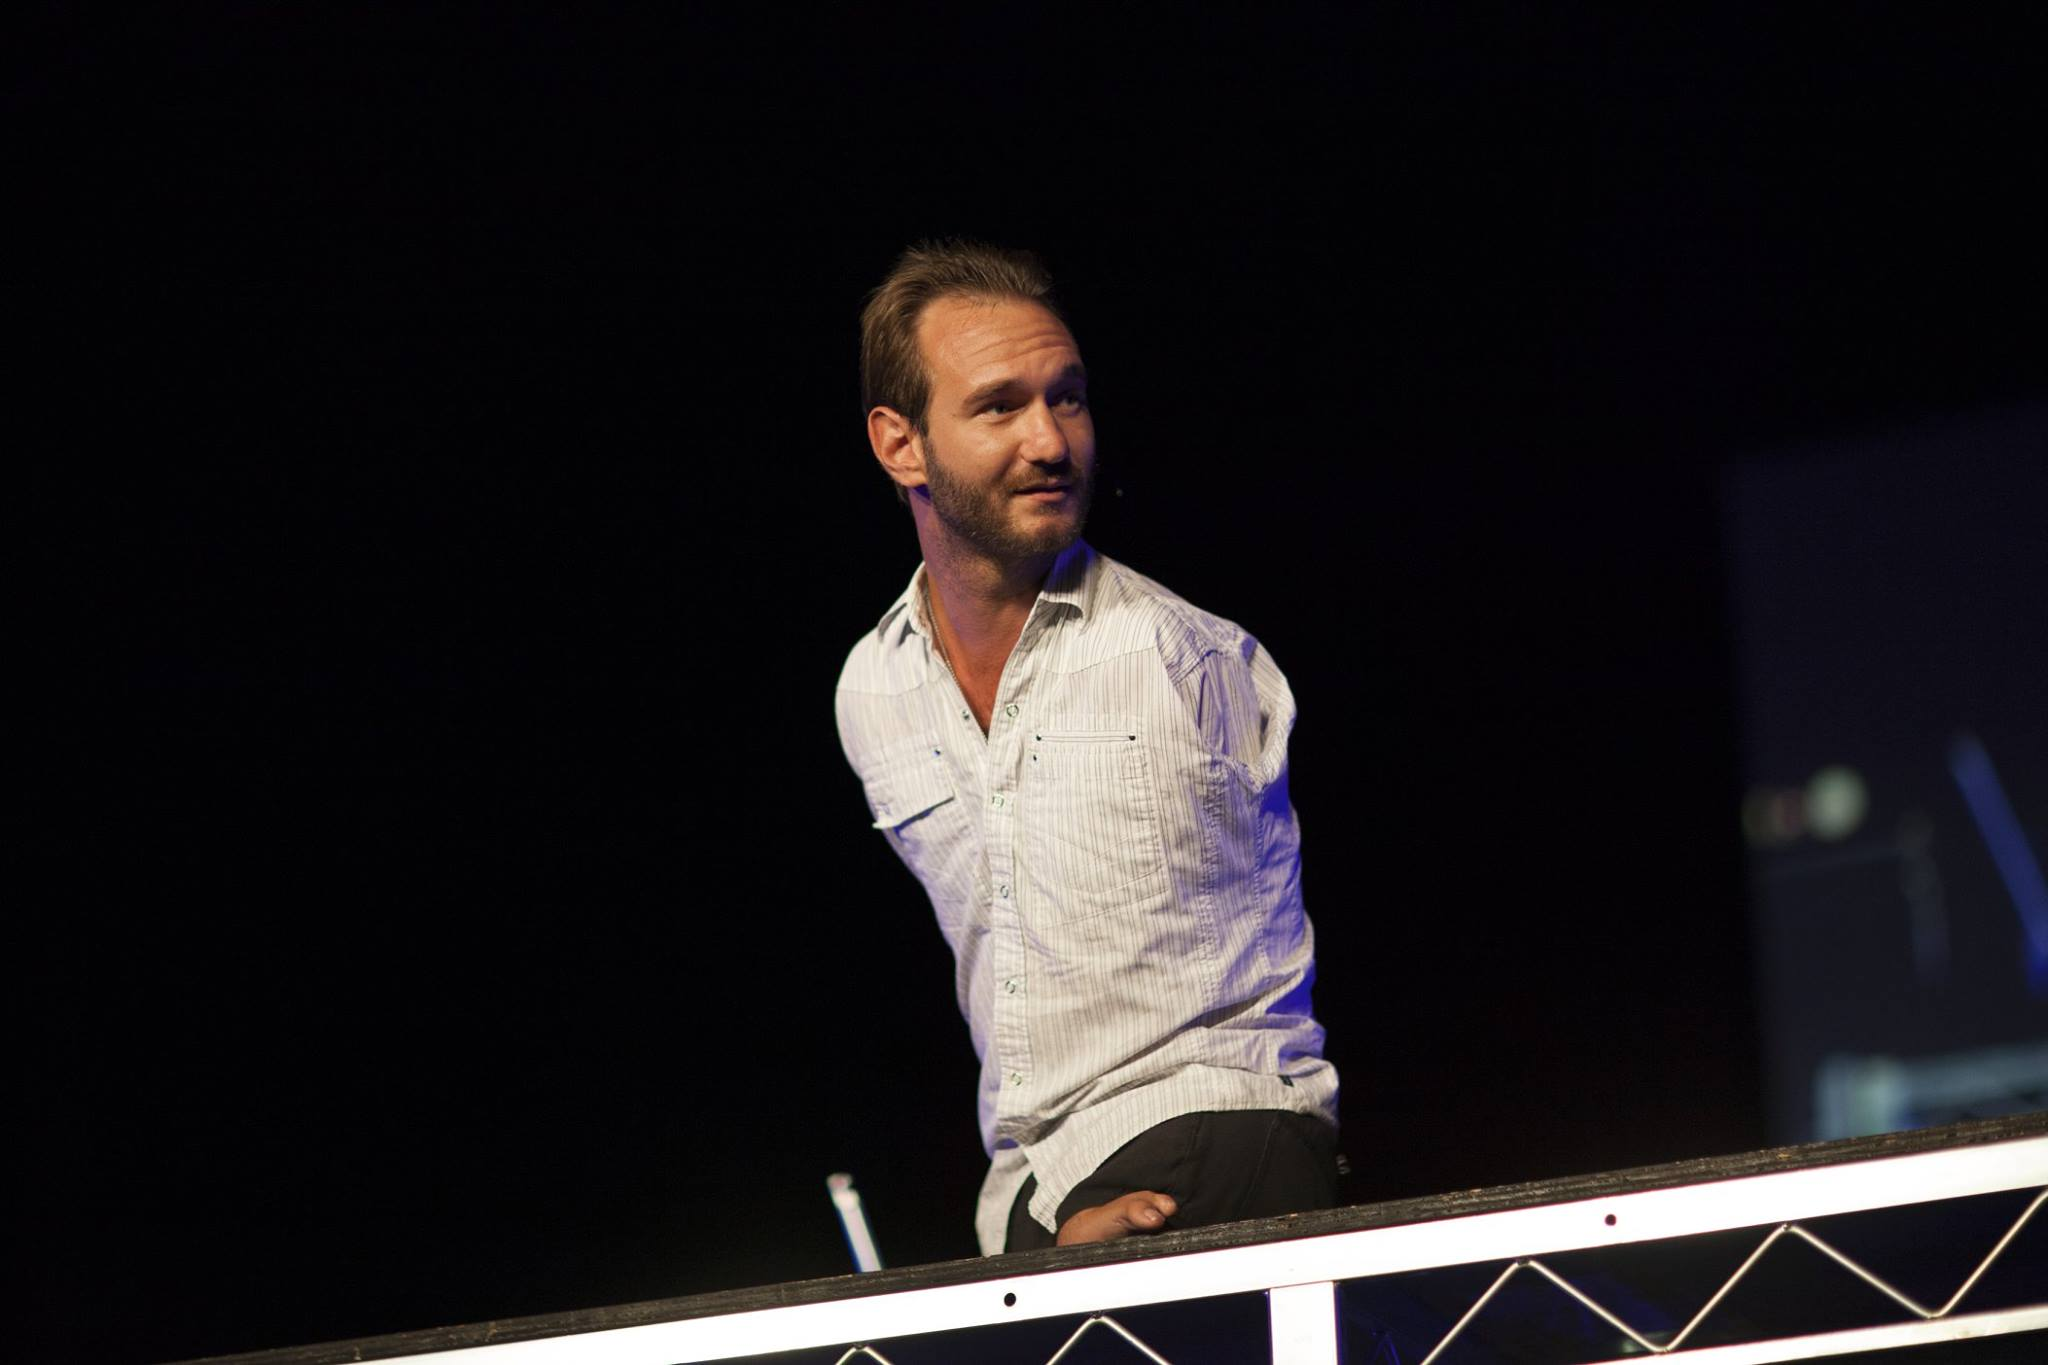 Motivational Speaker Nick Vujicic Held Full House Lecture in Budapest post's picture